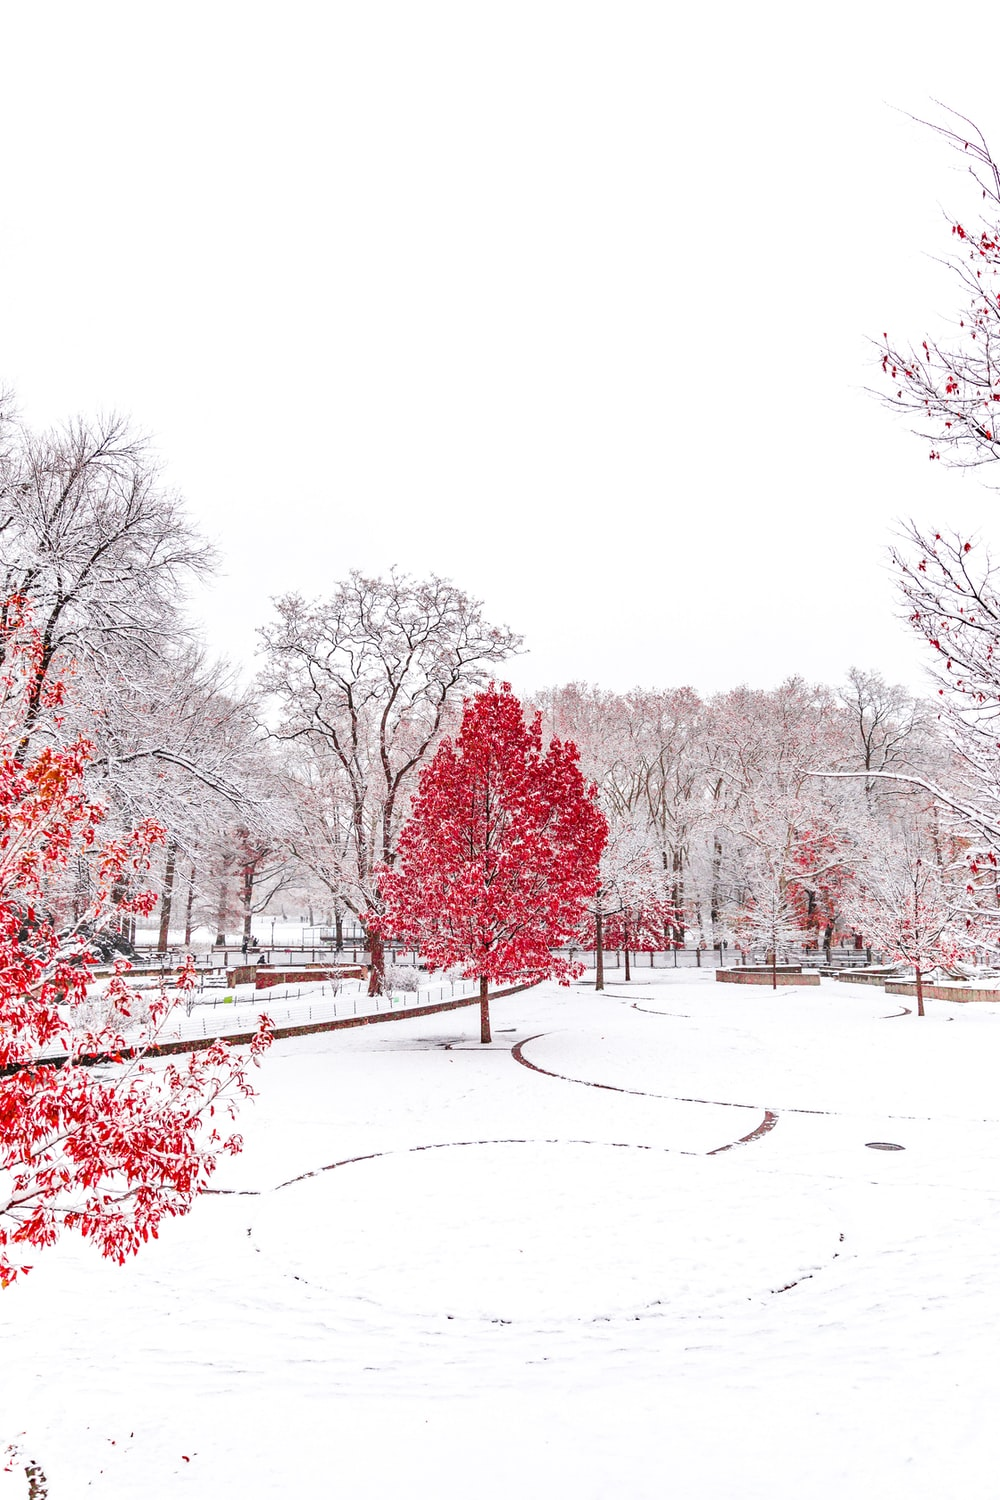 snow-covered park with red trees